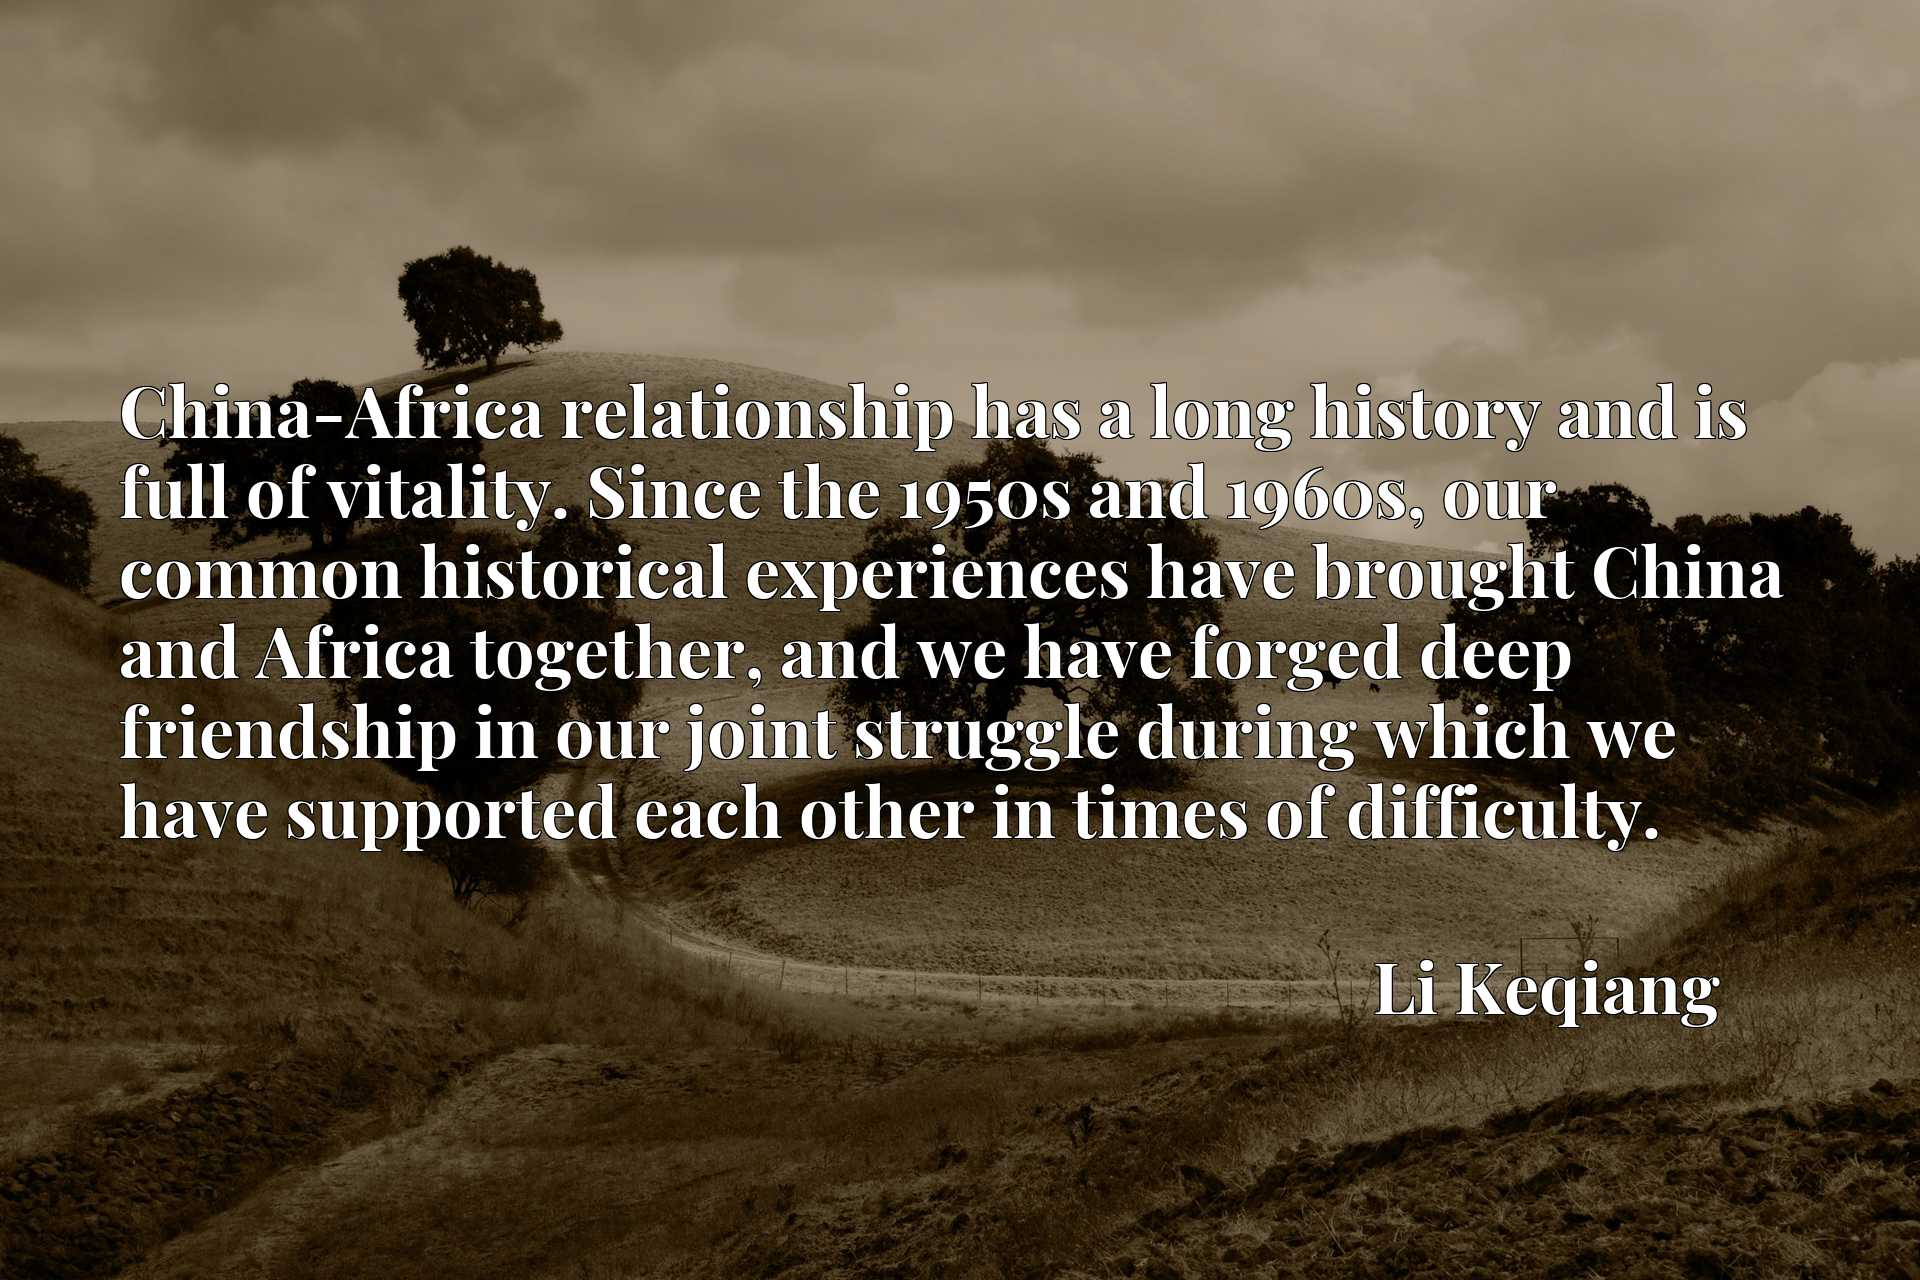 China-Africa relationship has a long history and is full of vitality. Since the 1950s and 1960s, our common historical experiences have brought China and Africa together, and we have forged deep friendship in our joint struggle during which we have supported each other in times of difficulty.